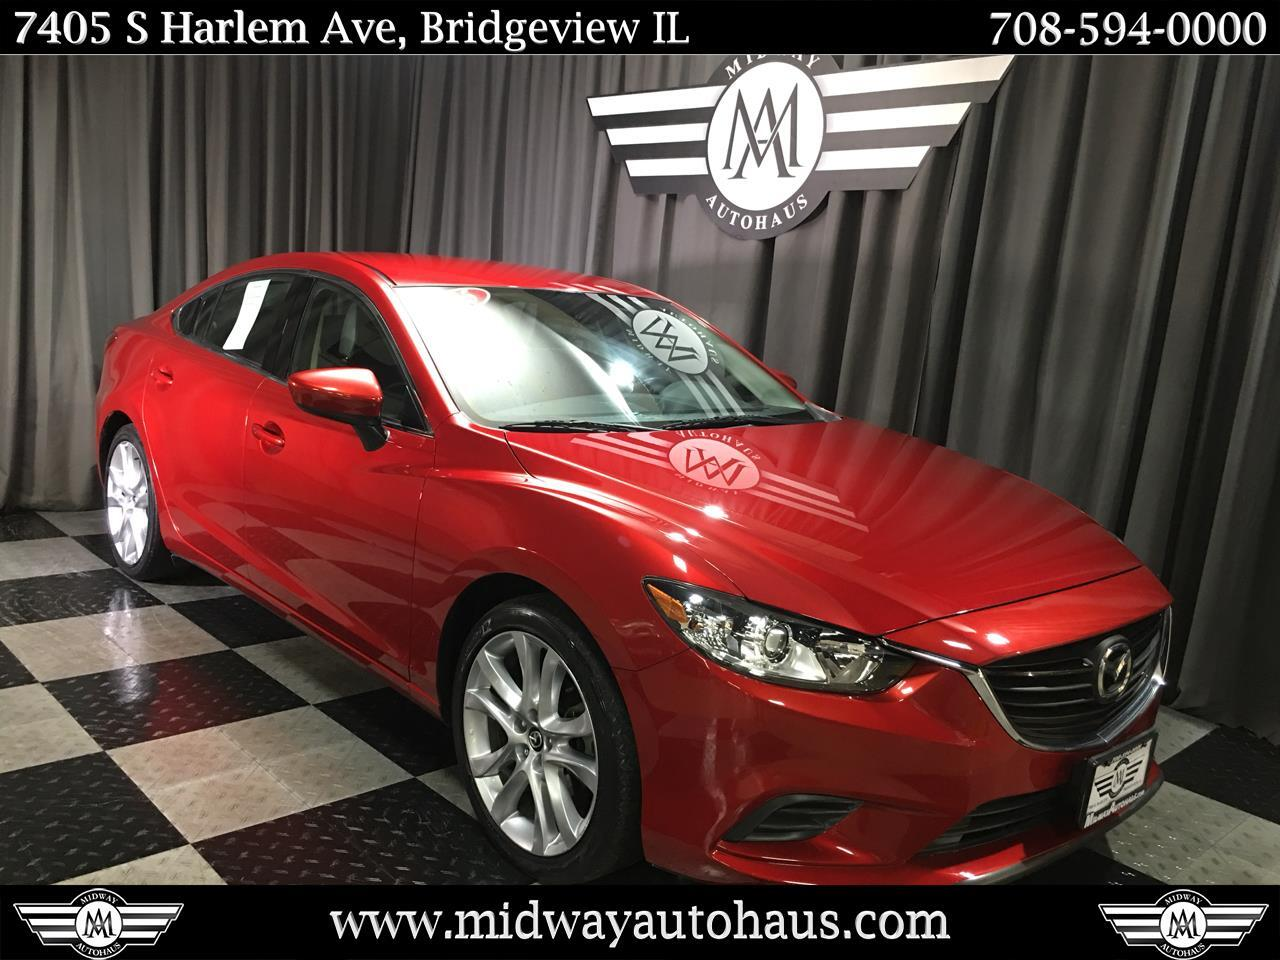 Pre-Owned 2015 Mazda6 4dr Sdn Man i Touring